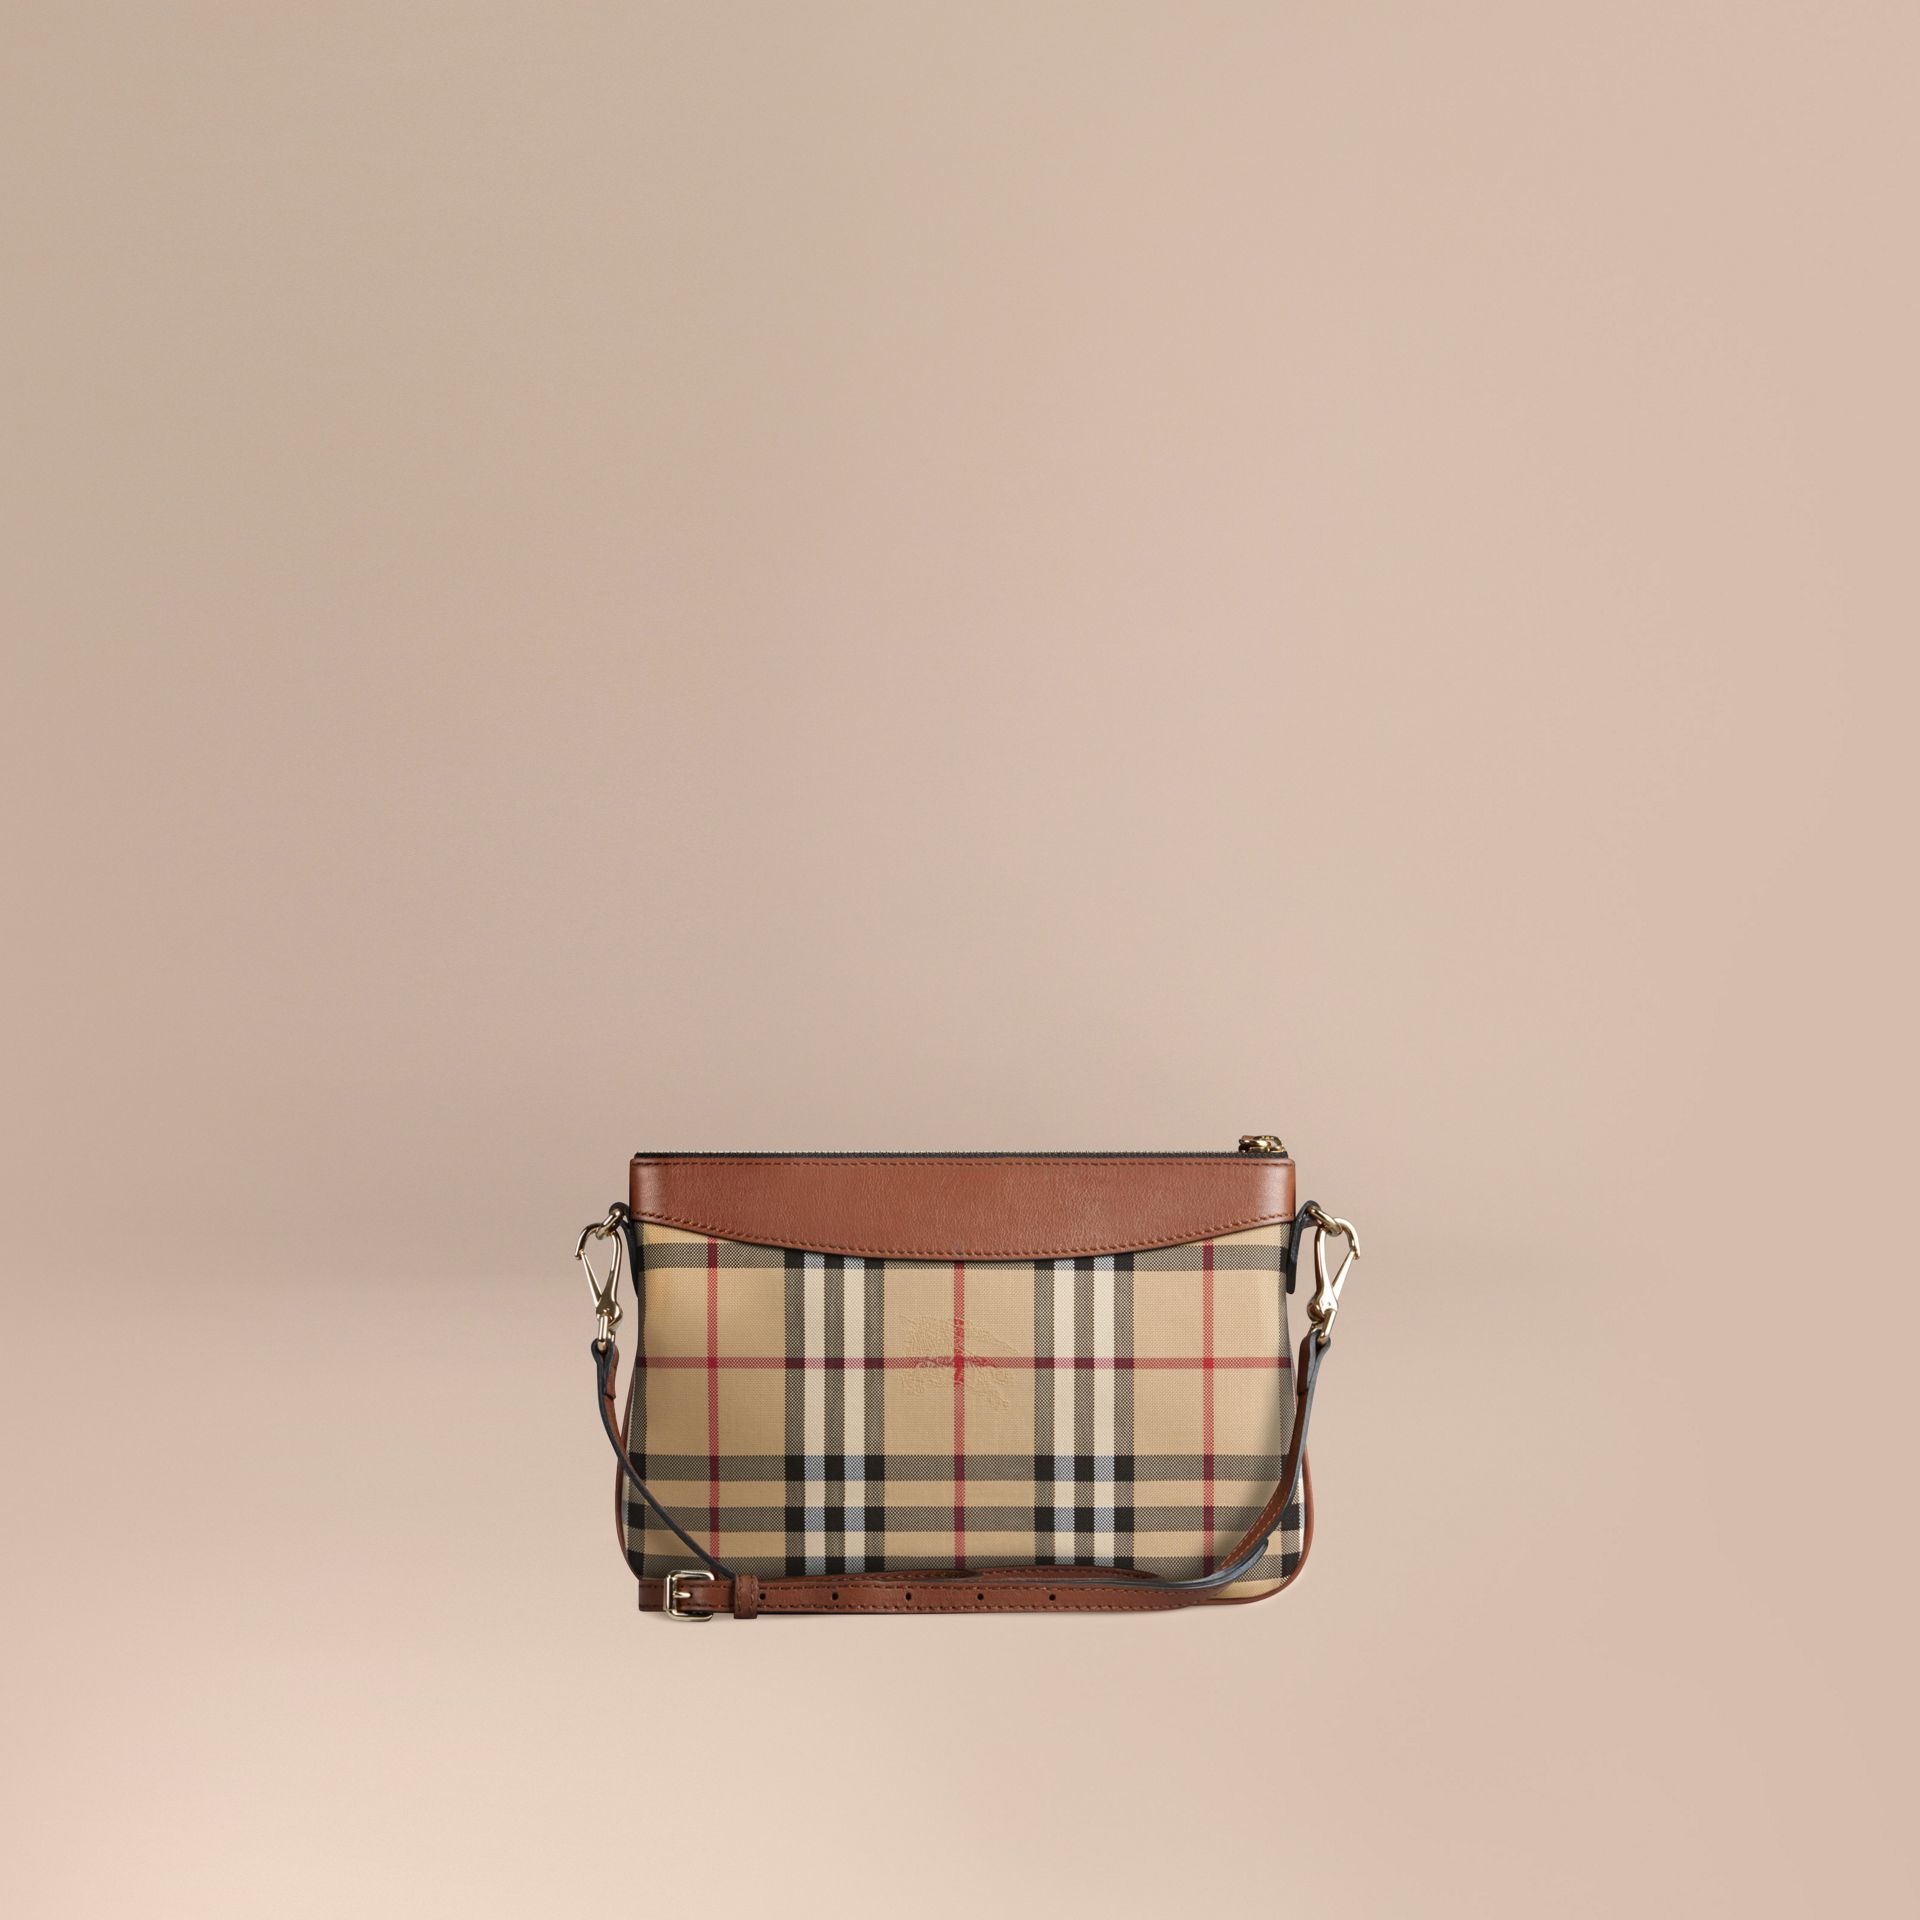 Tan Horseferry Check and Leather Clutch Bag Tan - gallery image 6